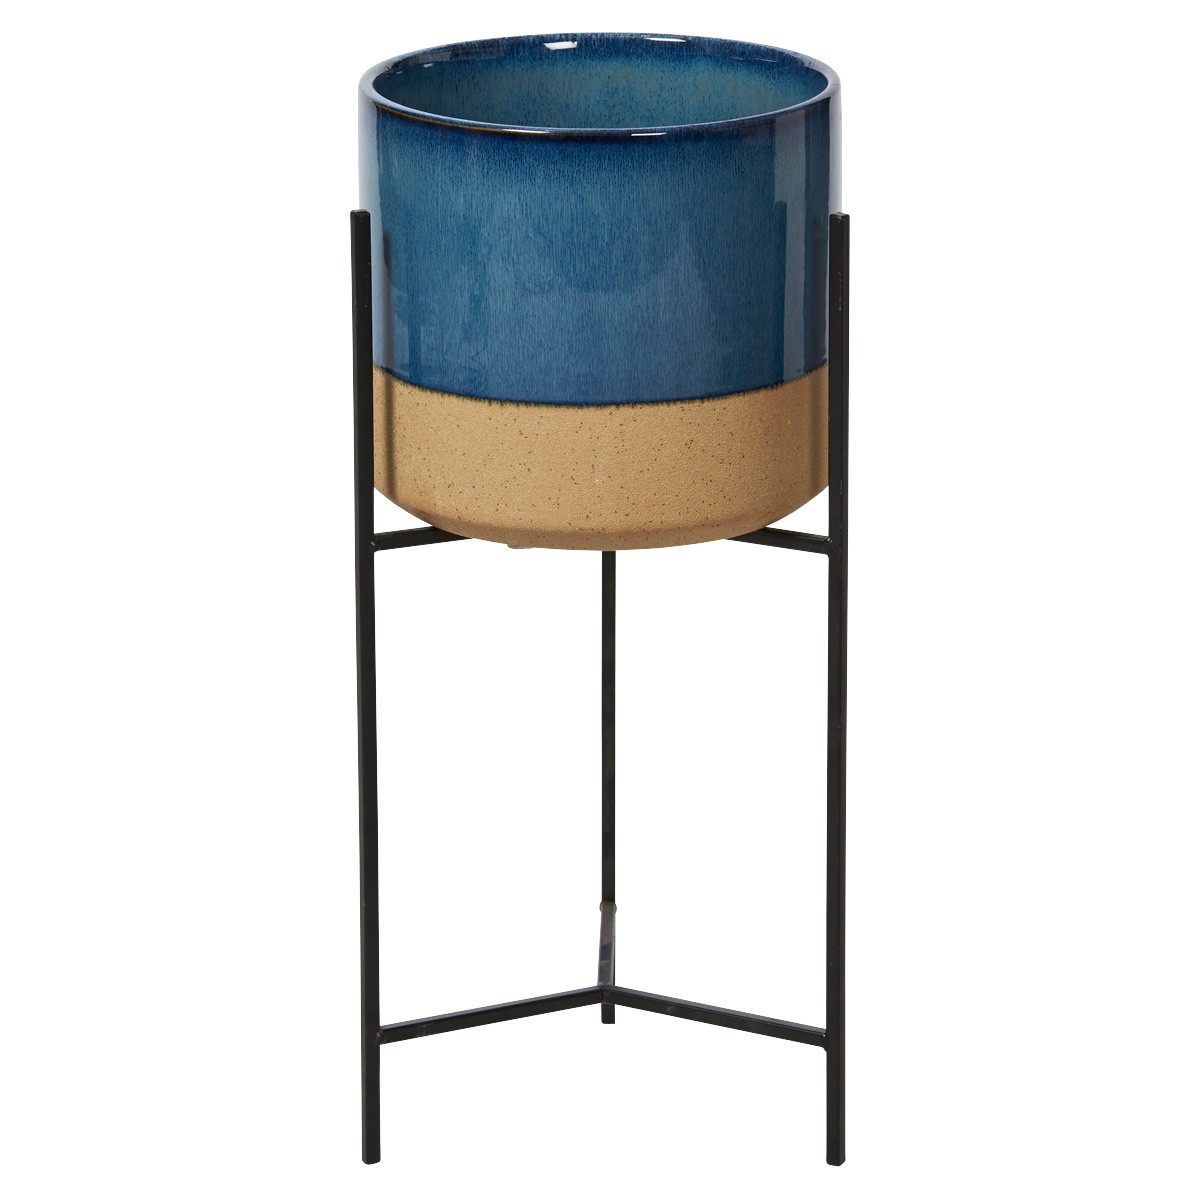 Avli Ceramic Pot Planter on Iron Stand, Medium, Blue